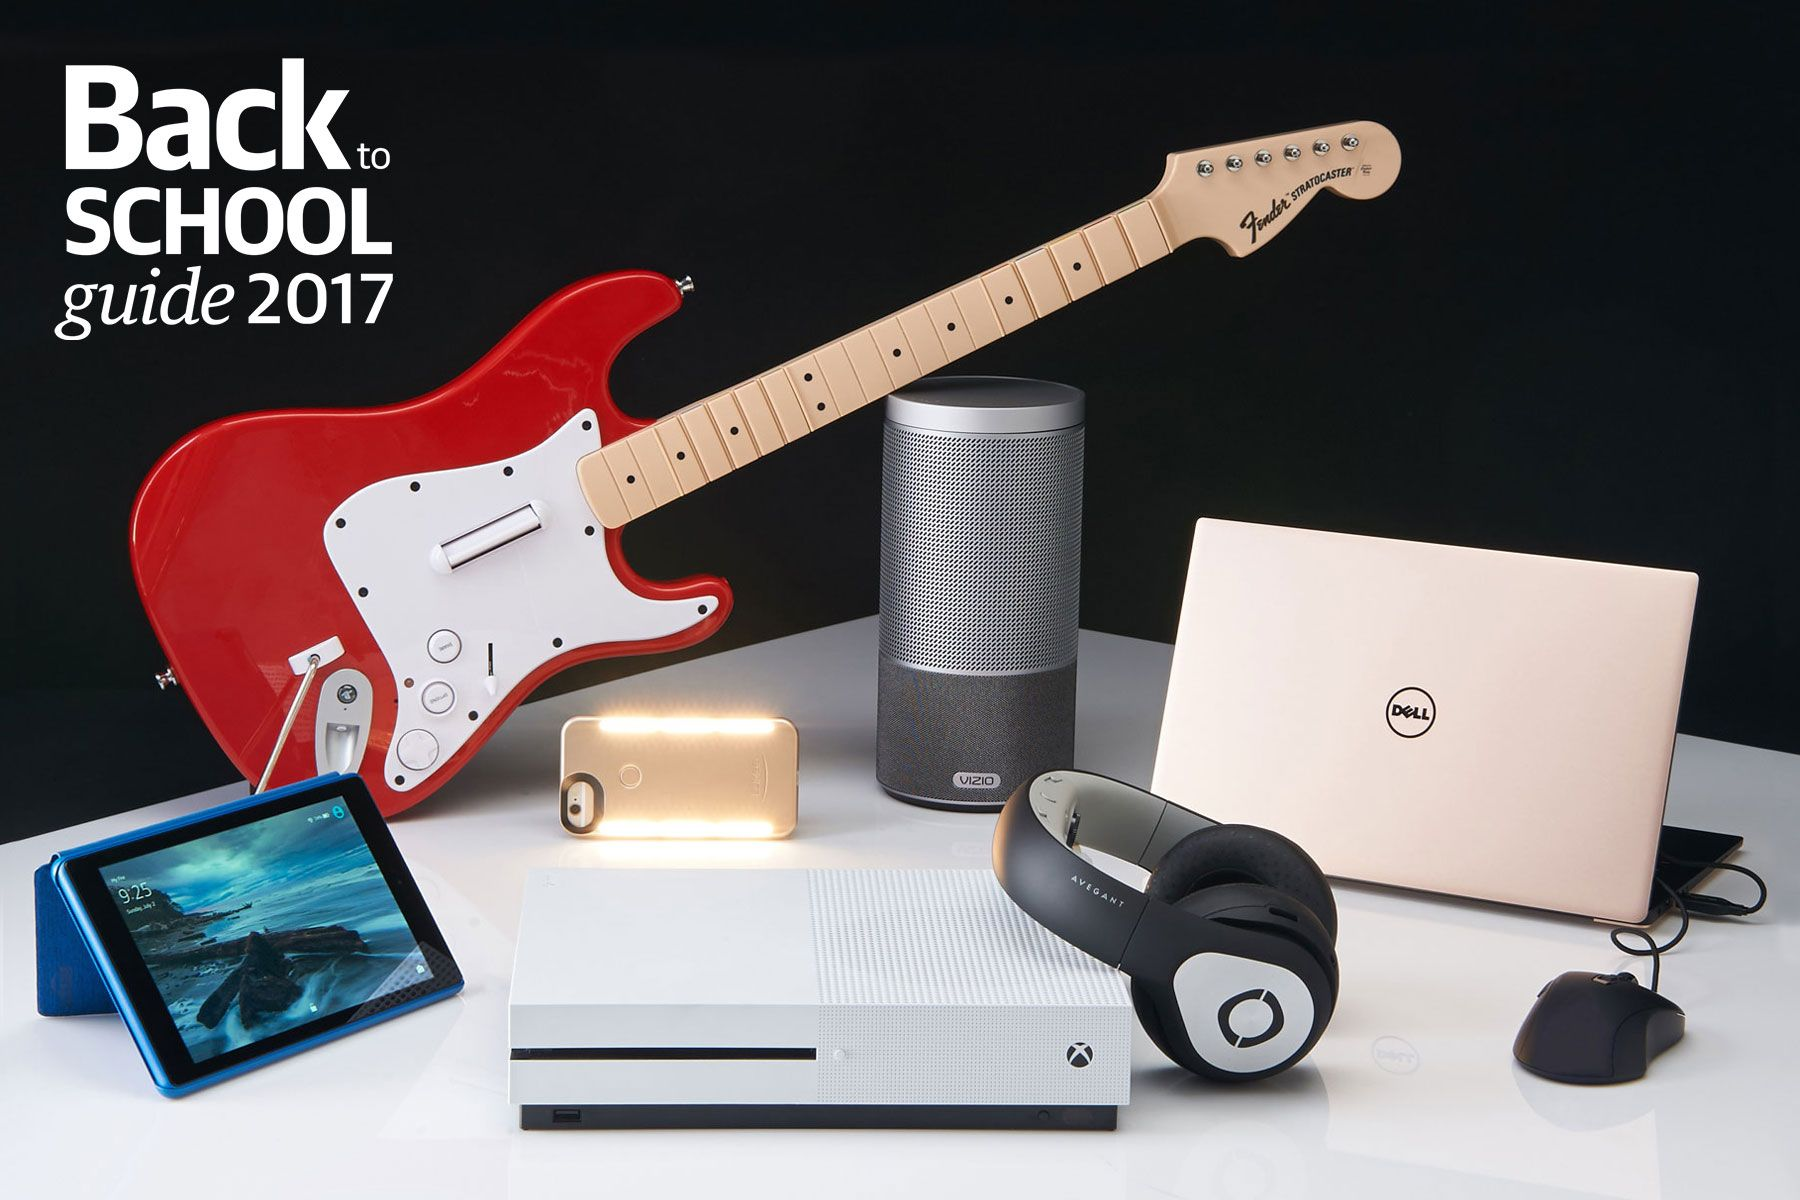 Introducing Engadget's 2017 backtoschool guide! Back